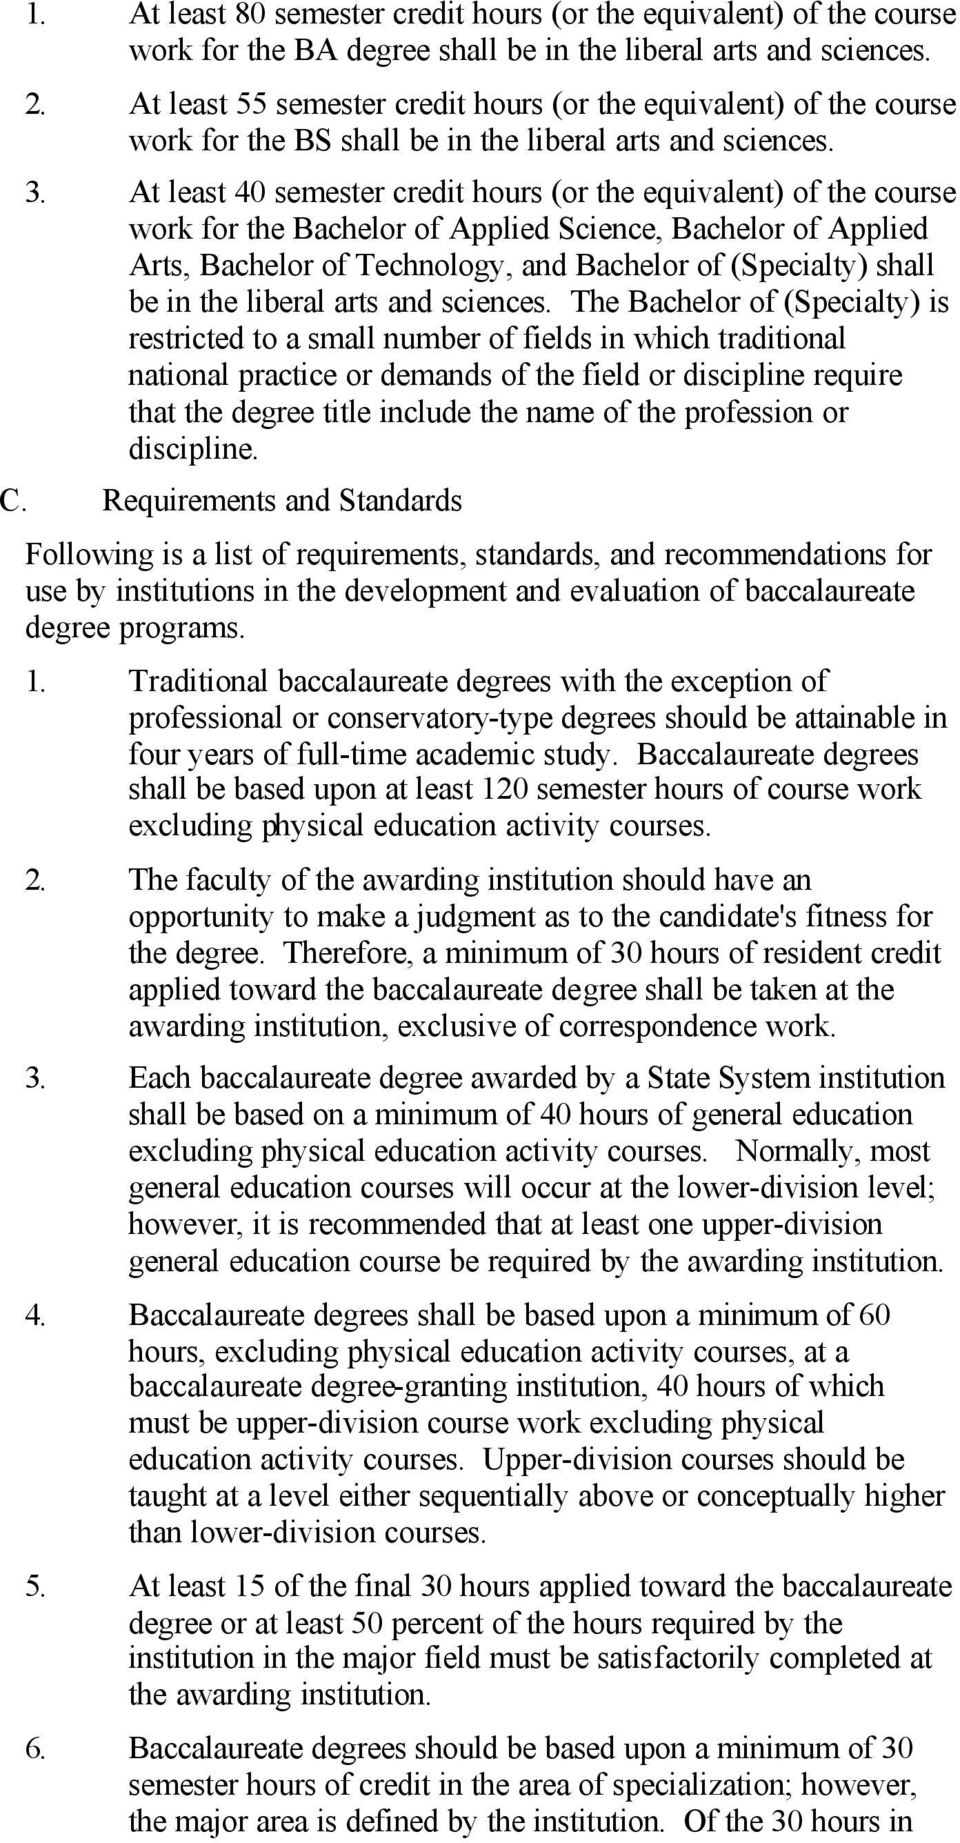 At least 40 semester credit hours (or the equivalent) of the course work for the Bachelor of Applied Science, Bachelor of Applied Arts, Bachelor of Technology, and Bachelor of (Specialty) shall be in